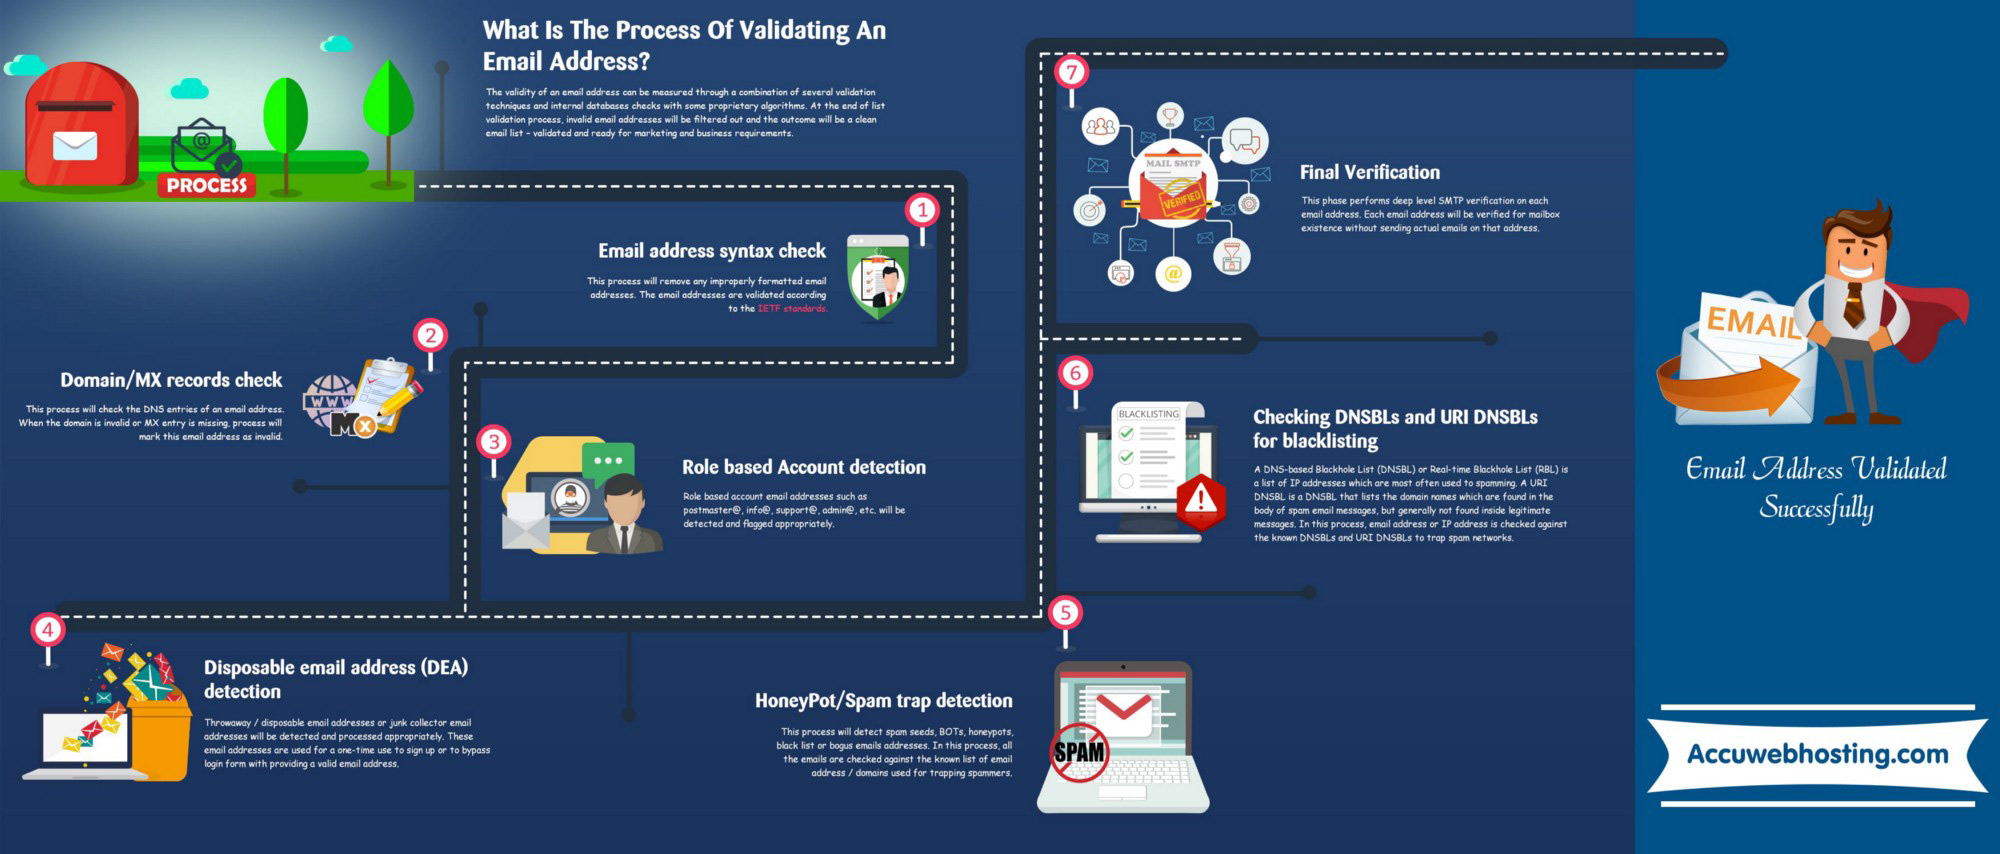 email address validation infographic